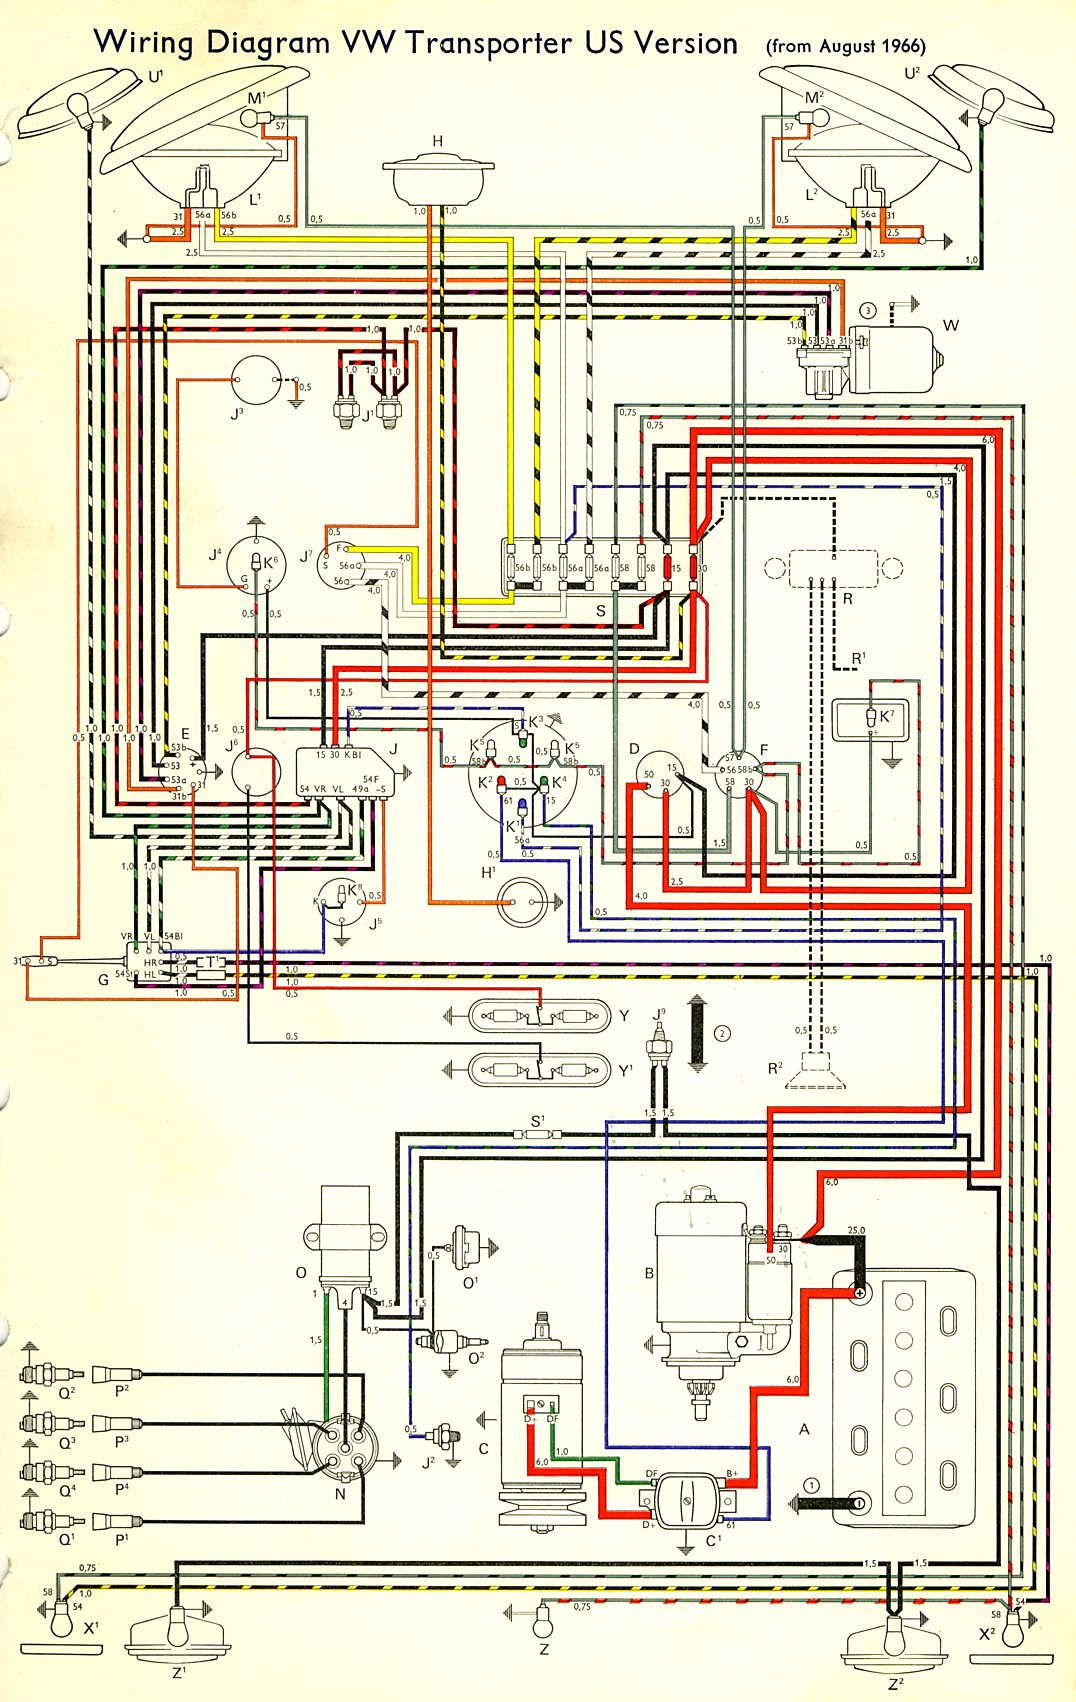 1962 vw wiring diagram private sharing about wiring diagram u2022 rh caraccessoriesandsoftware co uk vw wiring diagram alternator vw bug wiring diagram